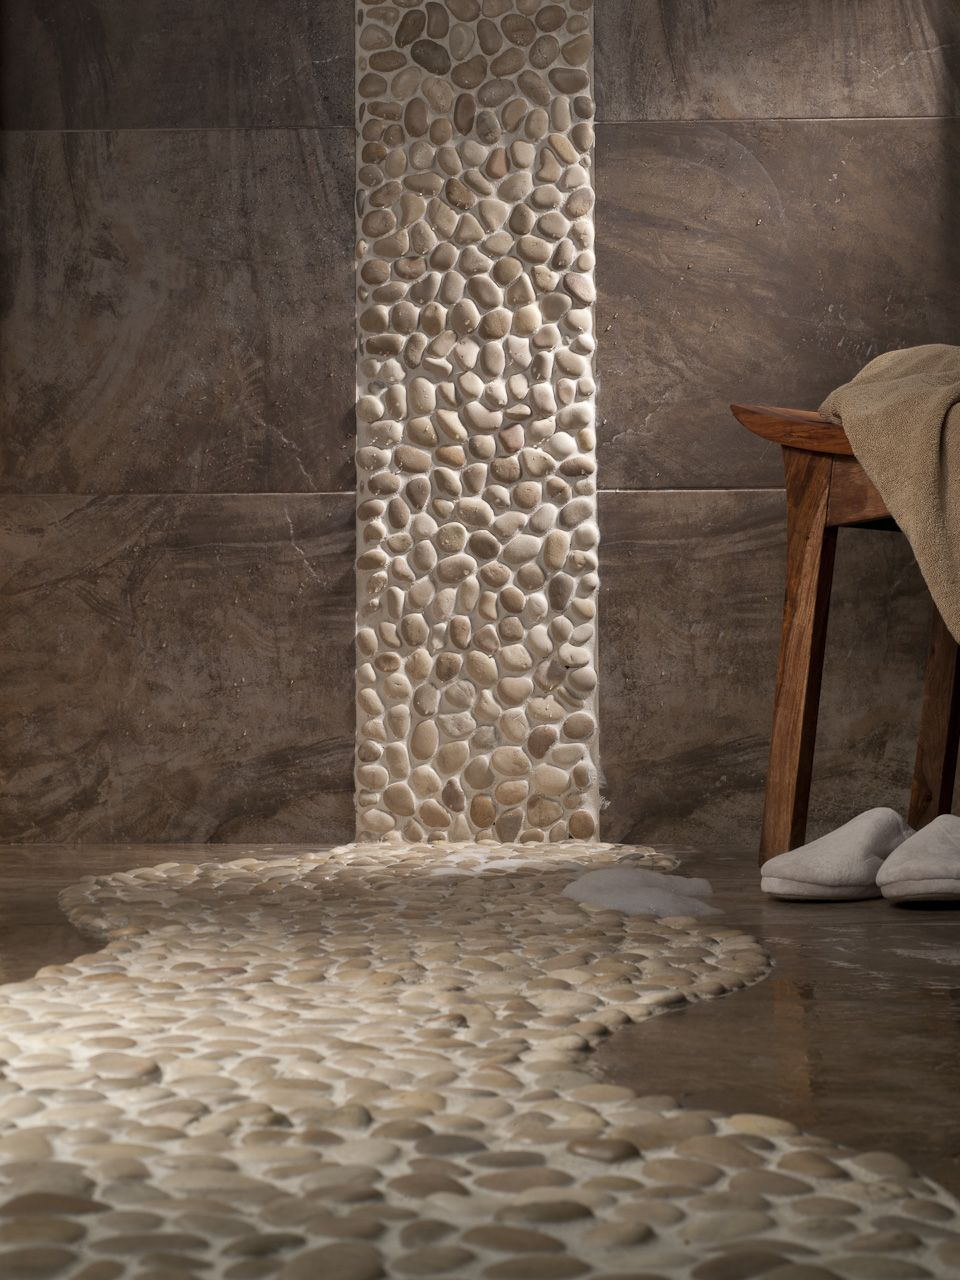 Admirable This Zen Bathroom With The River Rocks Is Amazing Shower Interior Design Ideas Gentotryabchikinfo